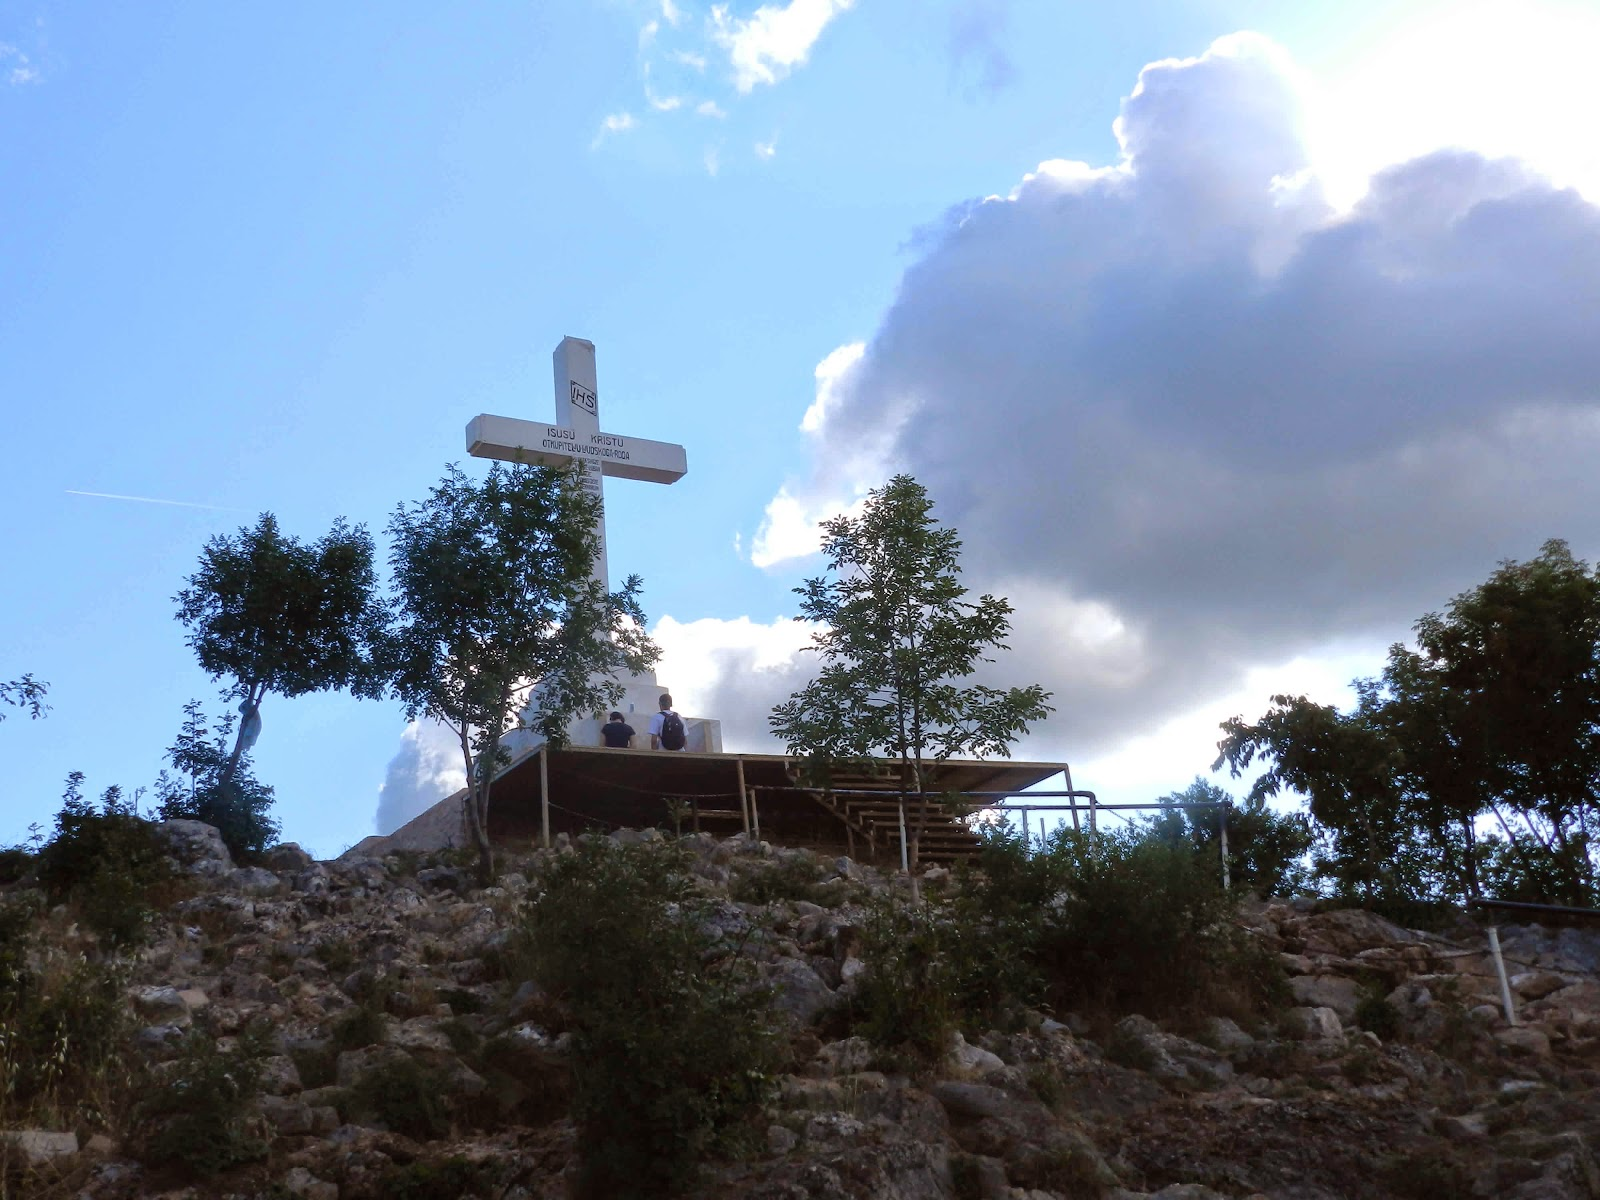 Cross Mountain, Medjugorje